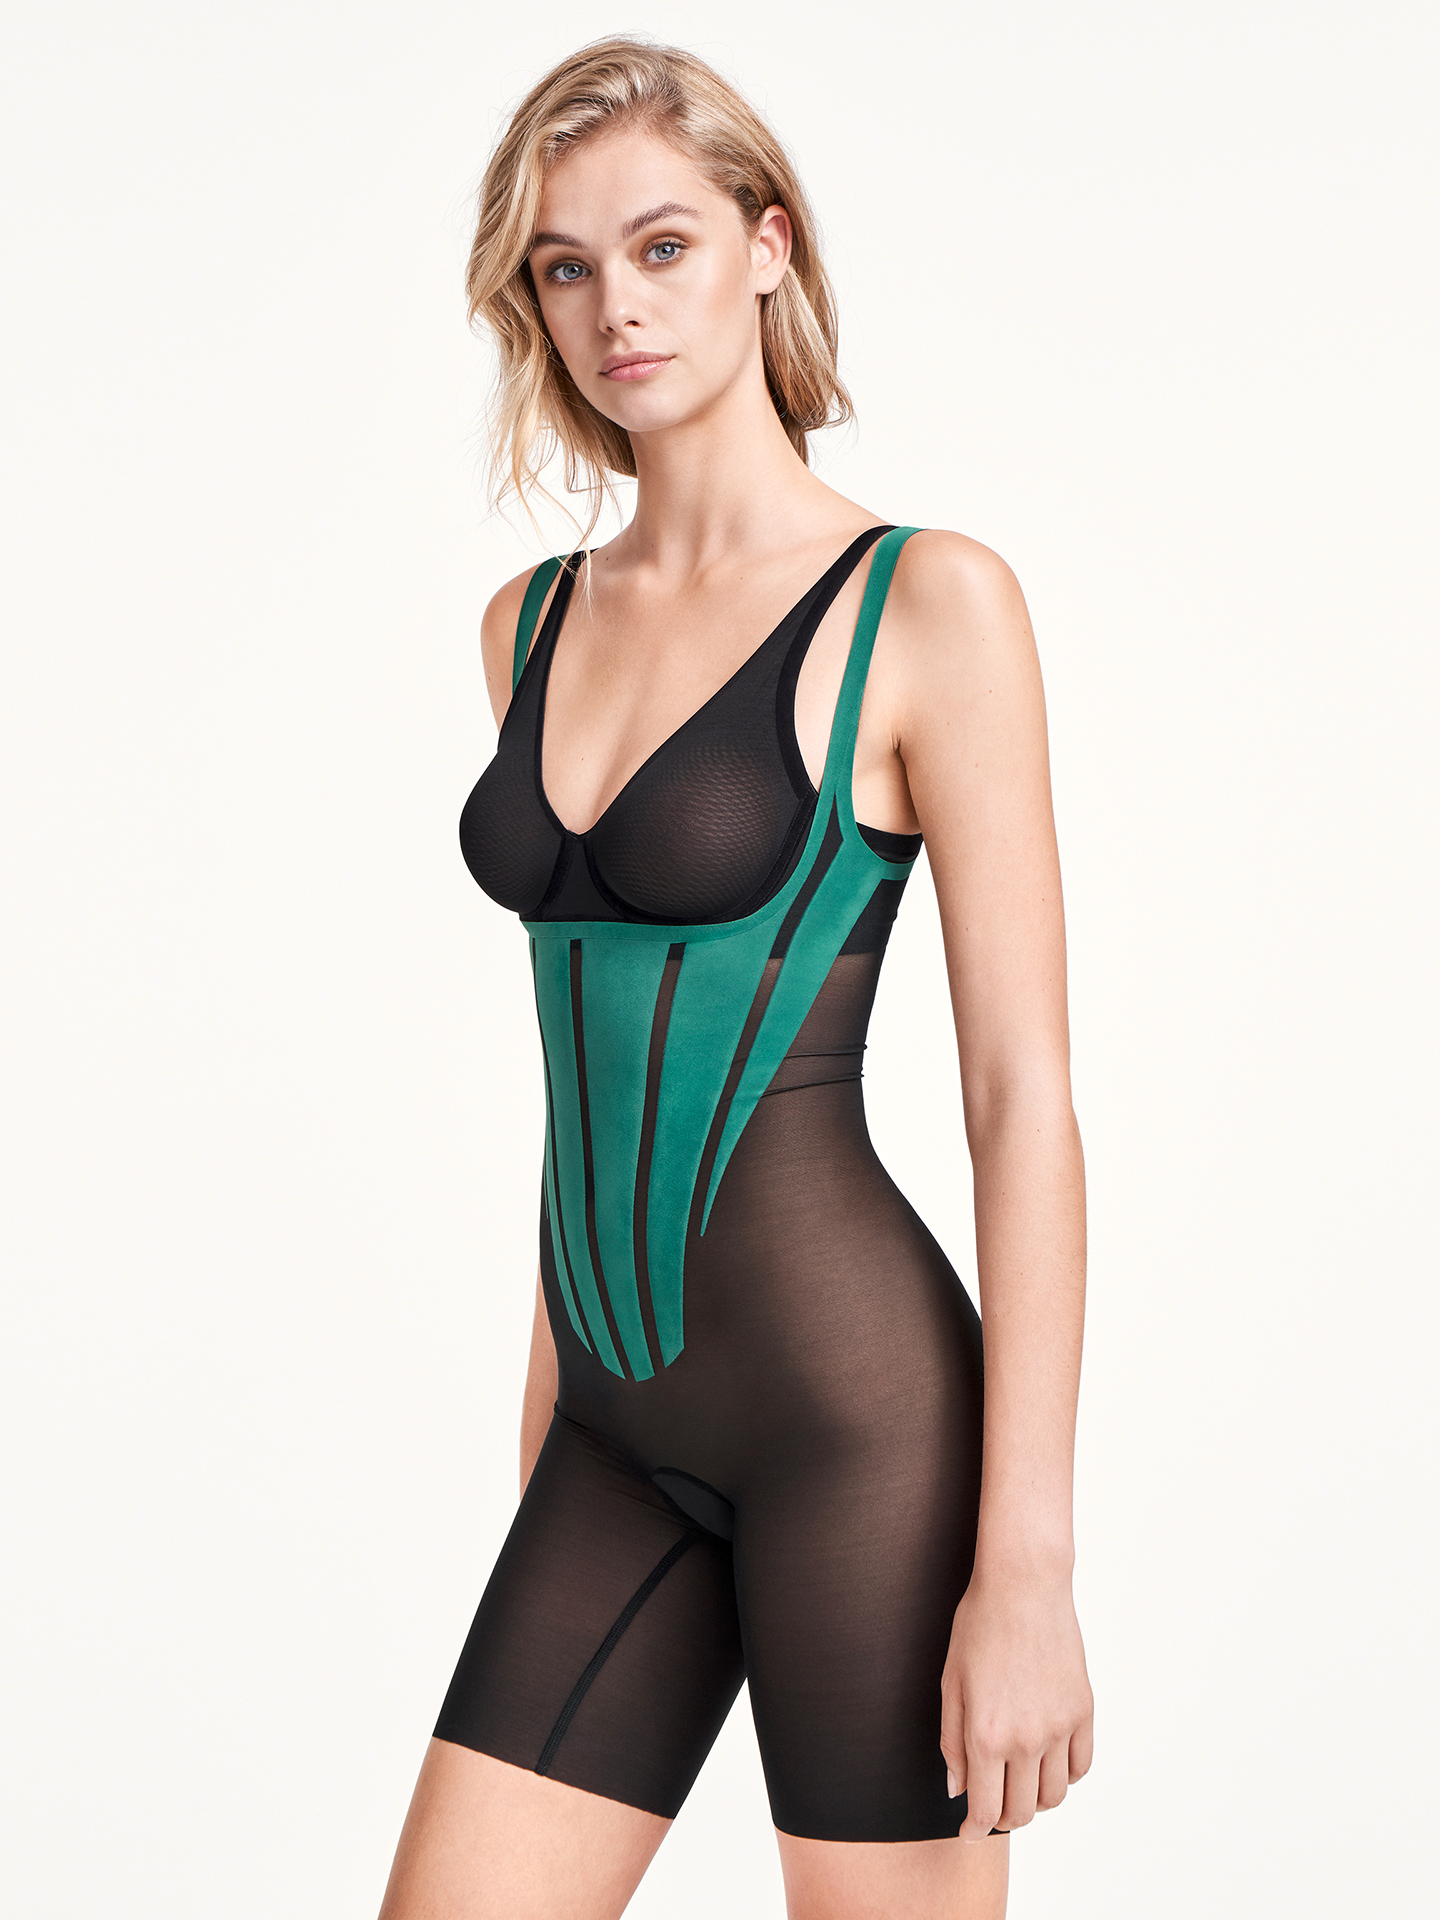 Wolford Apparel & Accessories > Clothing > 70th Annivers. Form. Body Suit